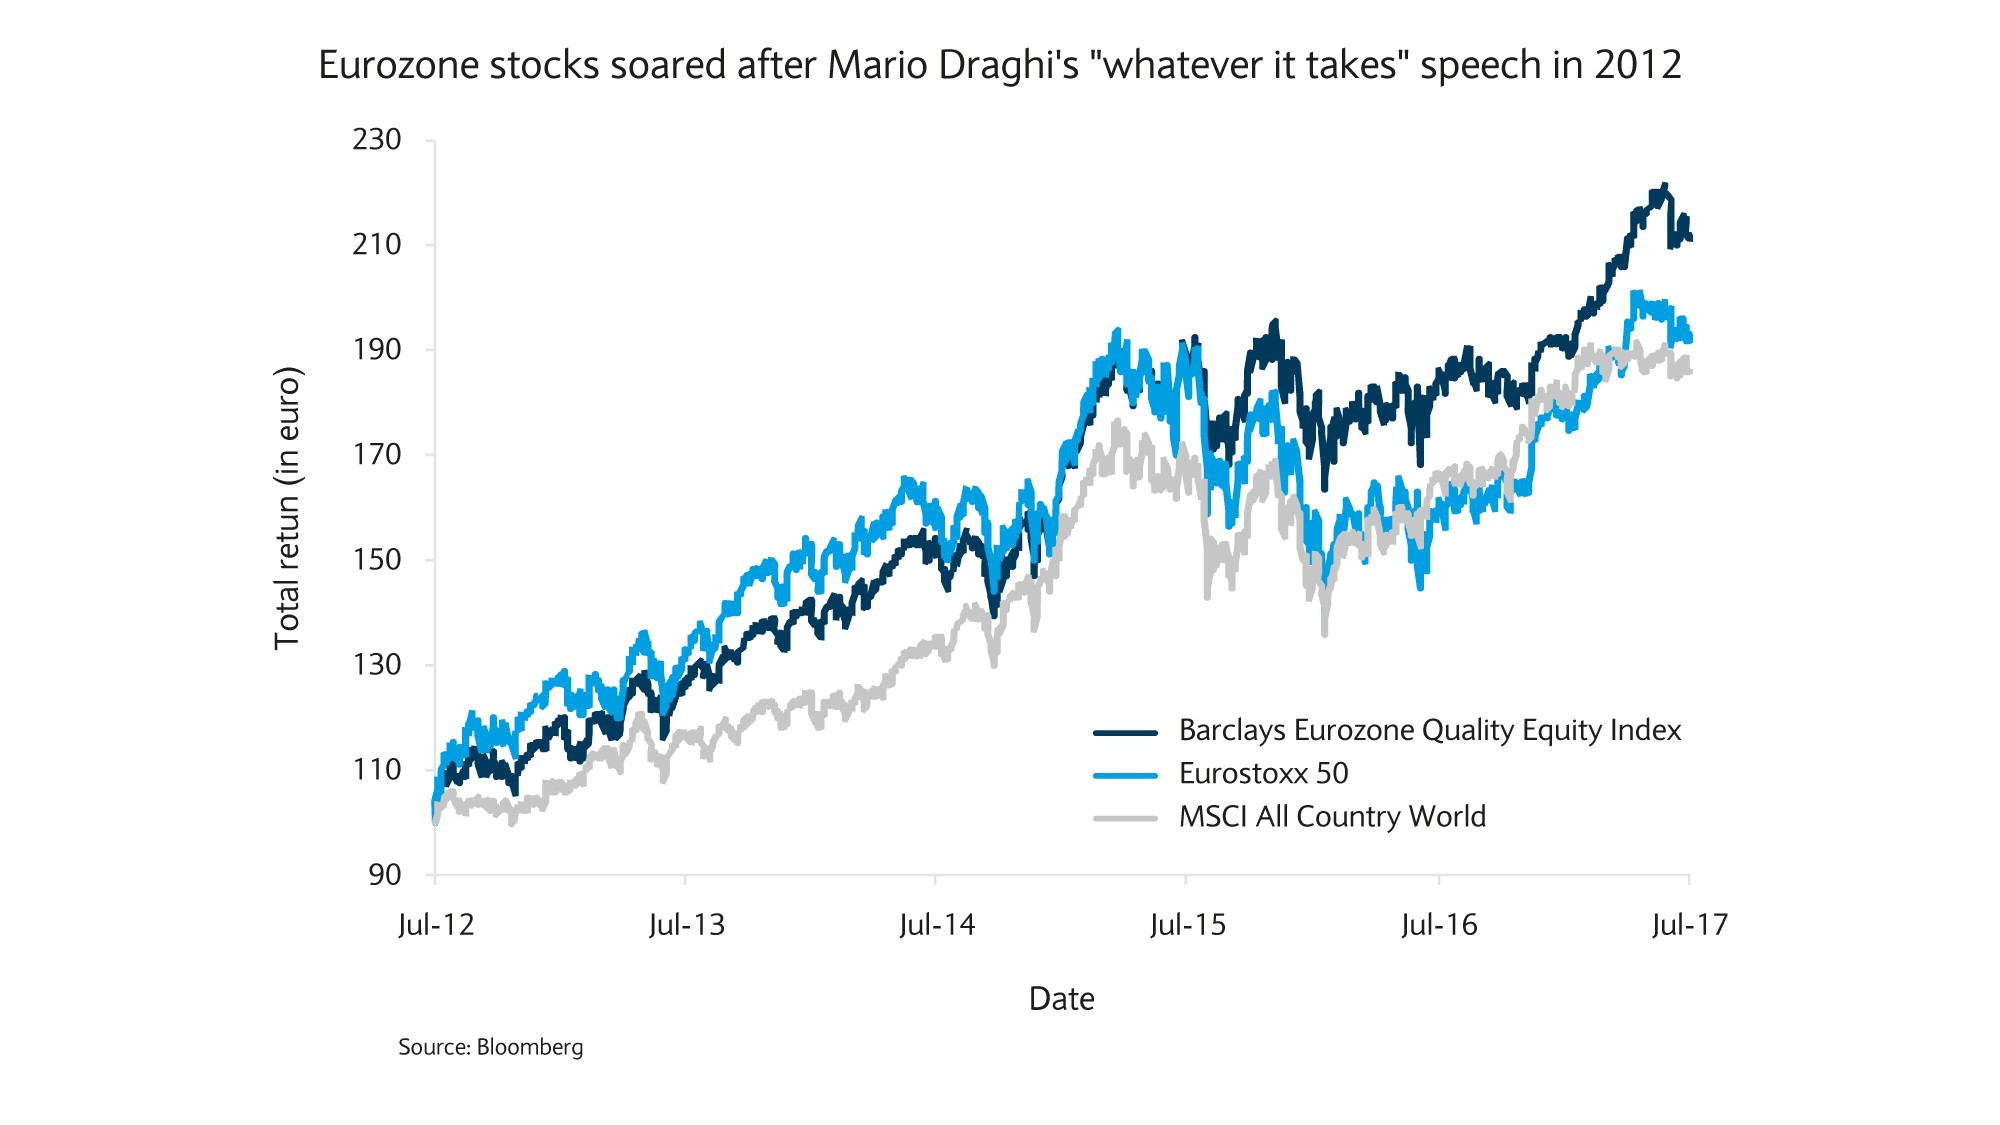 Eurozone stocks soared chart